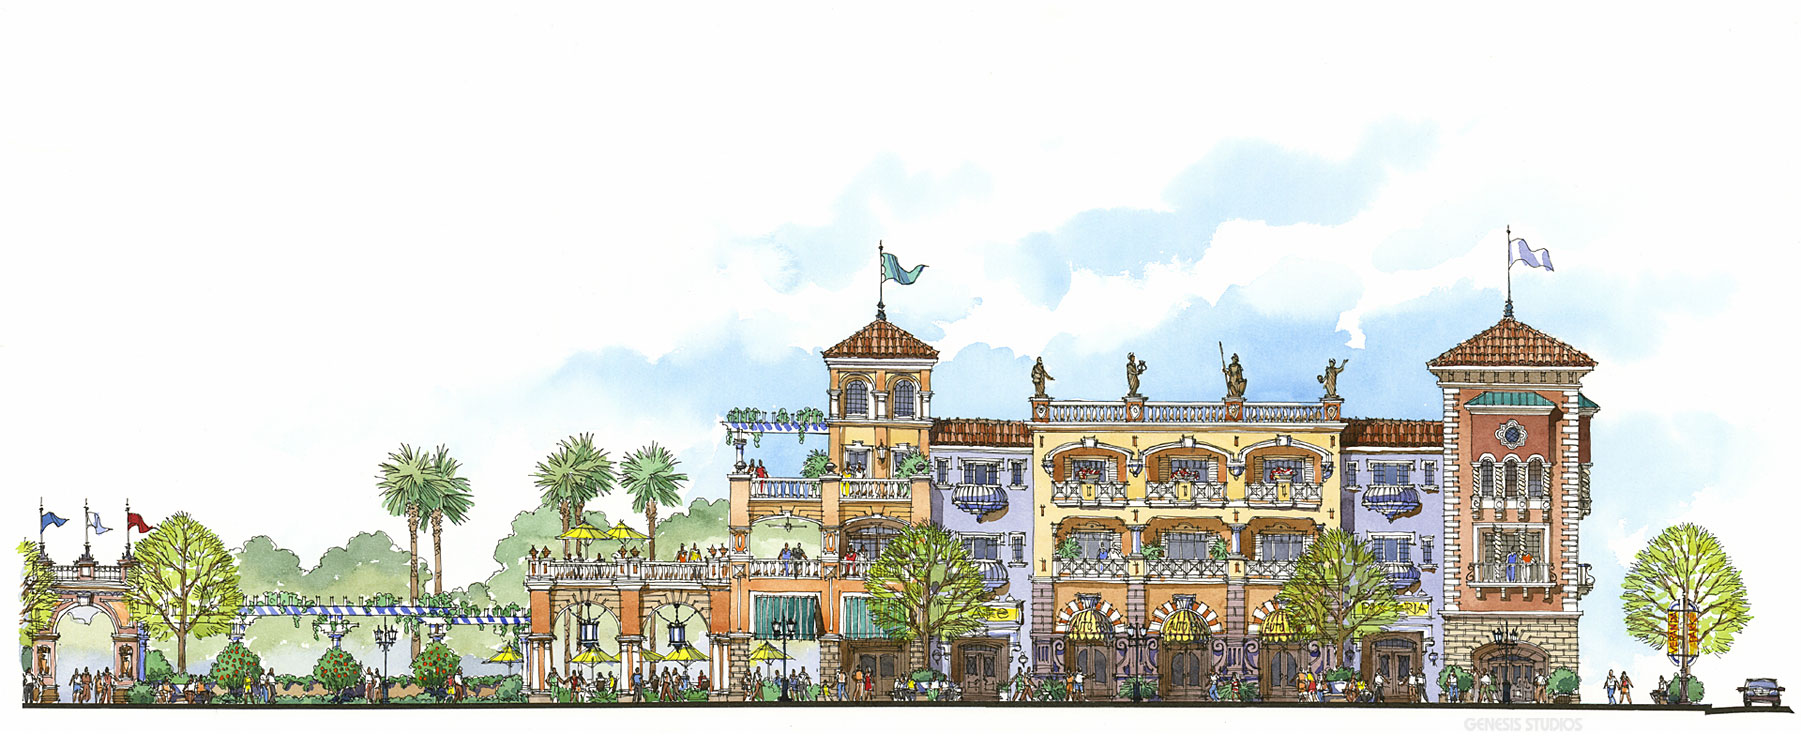 Watercolor Illustration of an Architectural Elevation for Veranda Partners